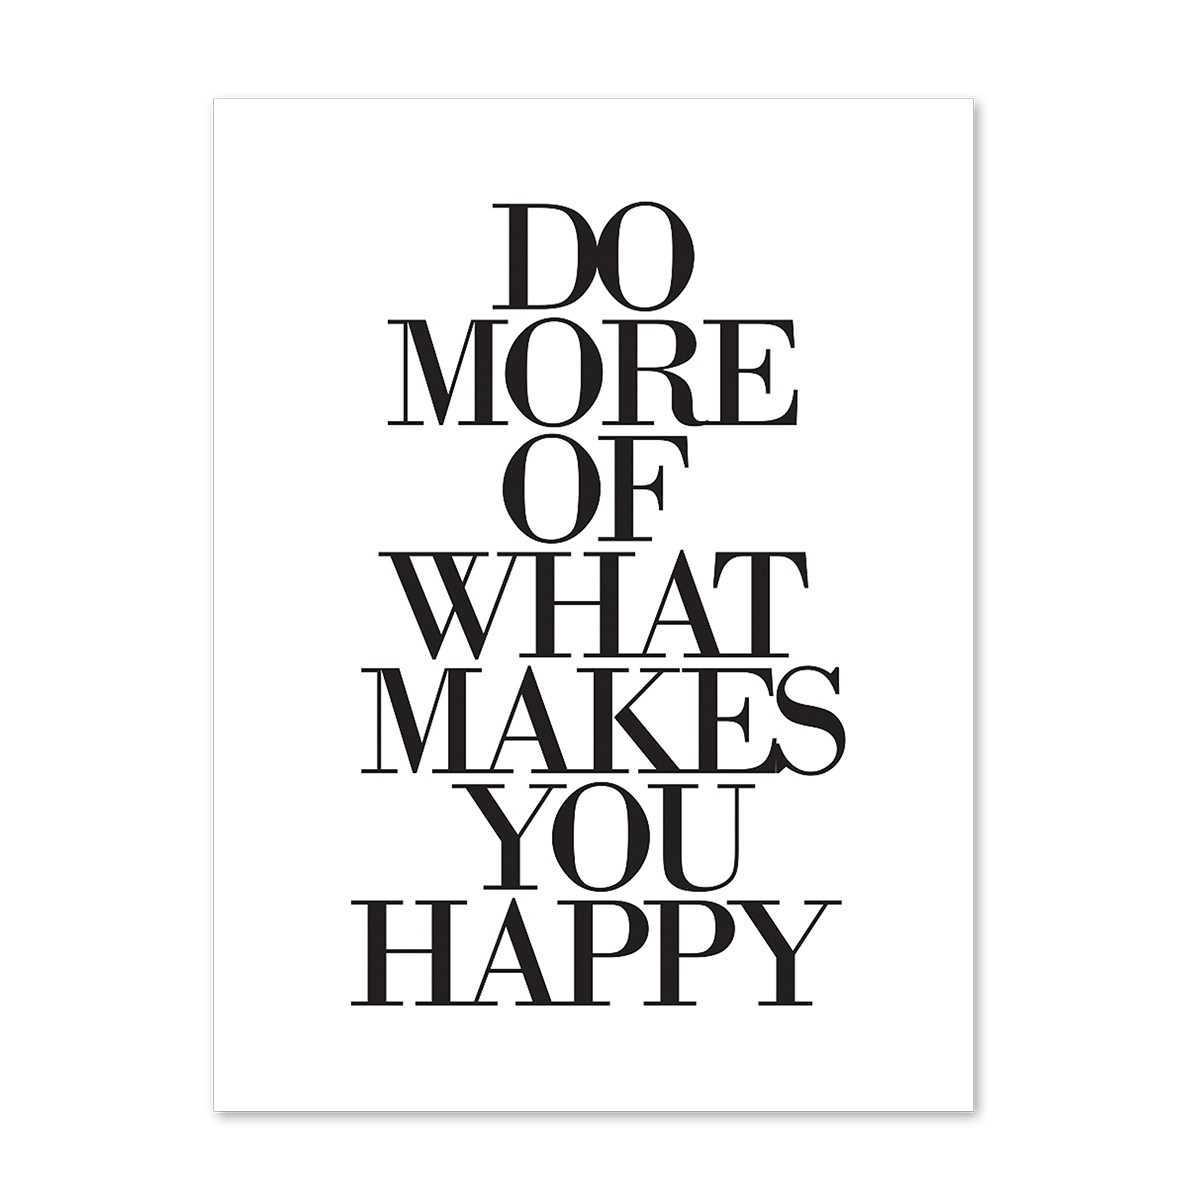 design poster 39 do more of what makes you happy 39 30x40 cm. Black Bedroom Furniture Sets. Home Design Ideas